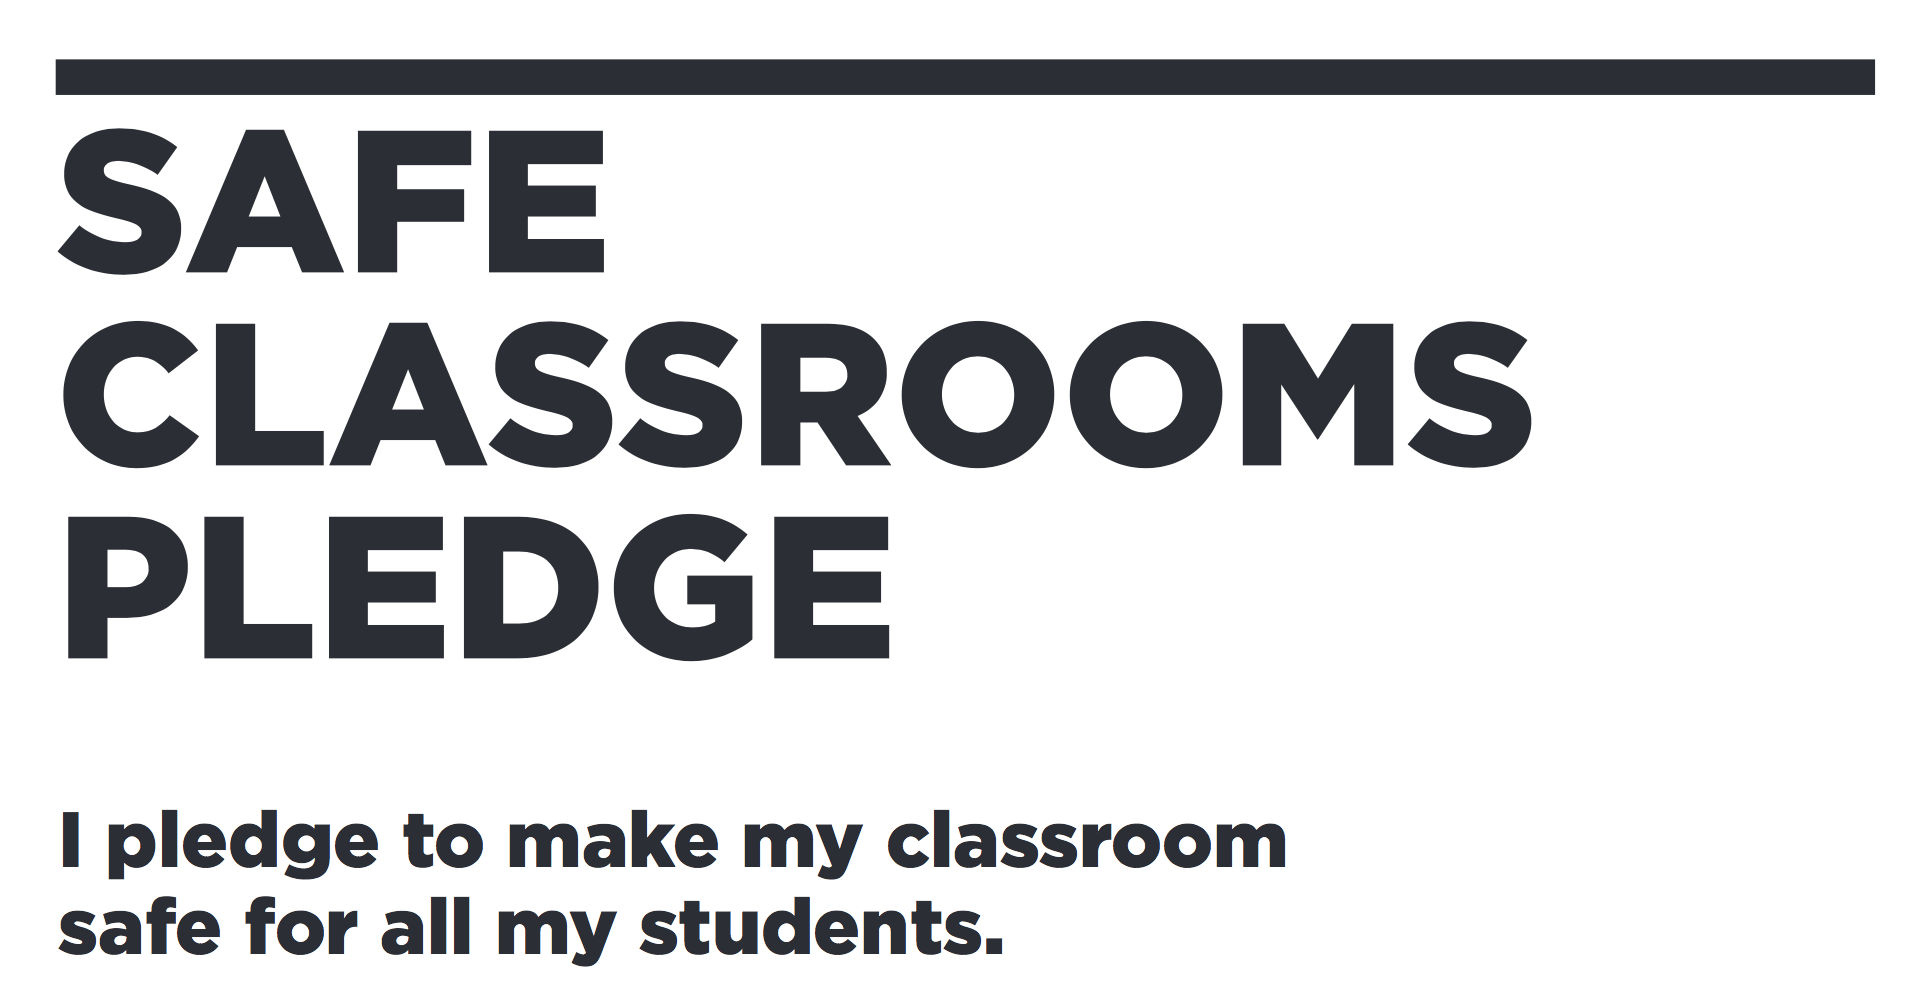 Teachers: Pledge to Protect Your Students - Teachers! Take the ACLU and DoSomething Safe Classrooms Pledge which supports a positive school climate where everyone can feel physically, emotionally, and socially safe. And encourage your colleagues to do the same!